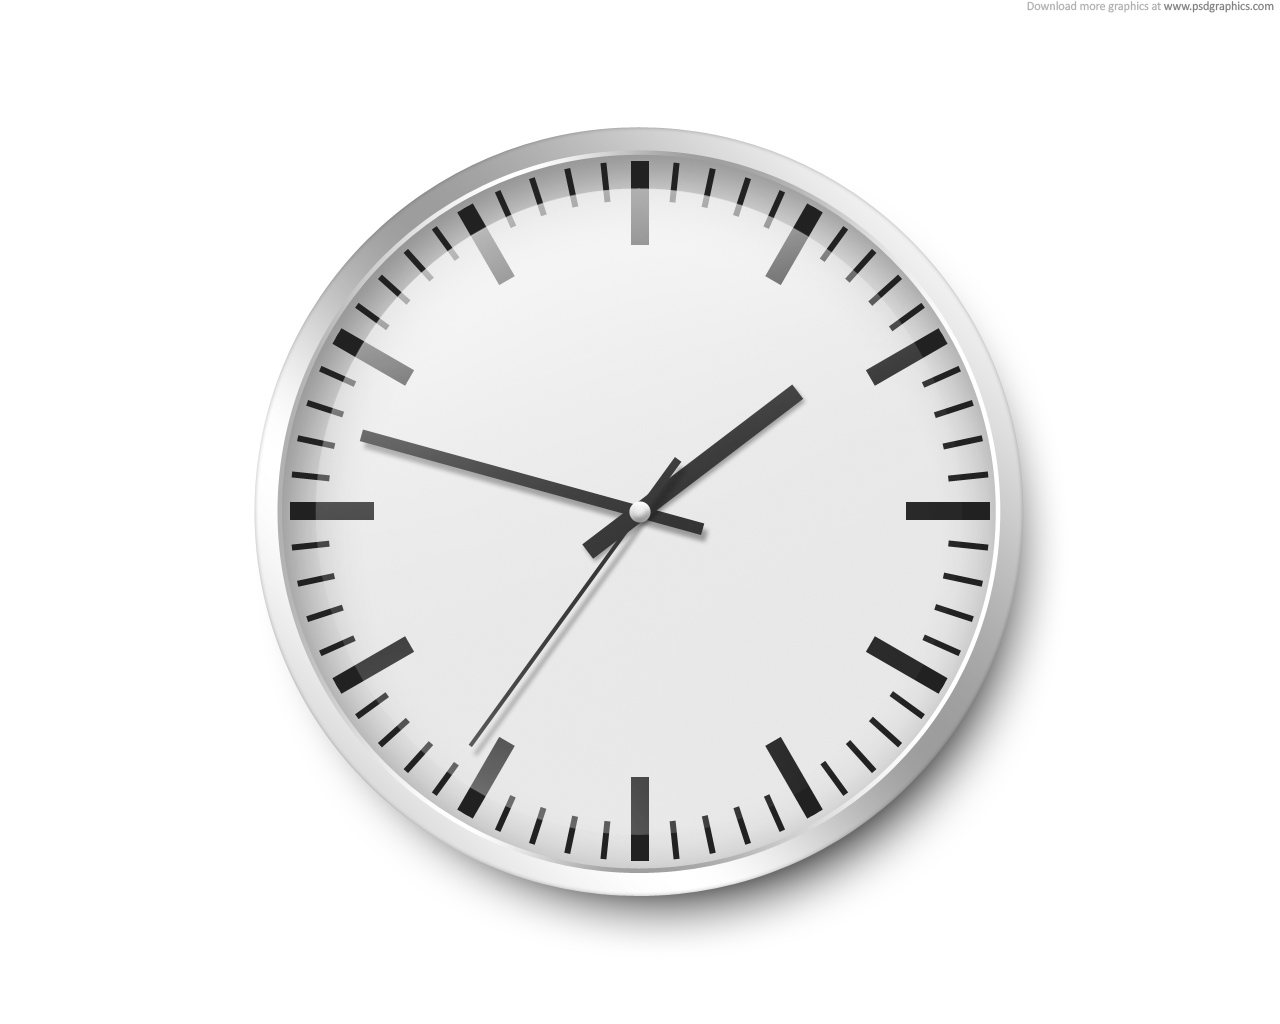 wall-clock-template.jpg